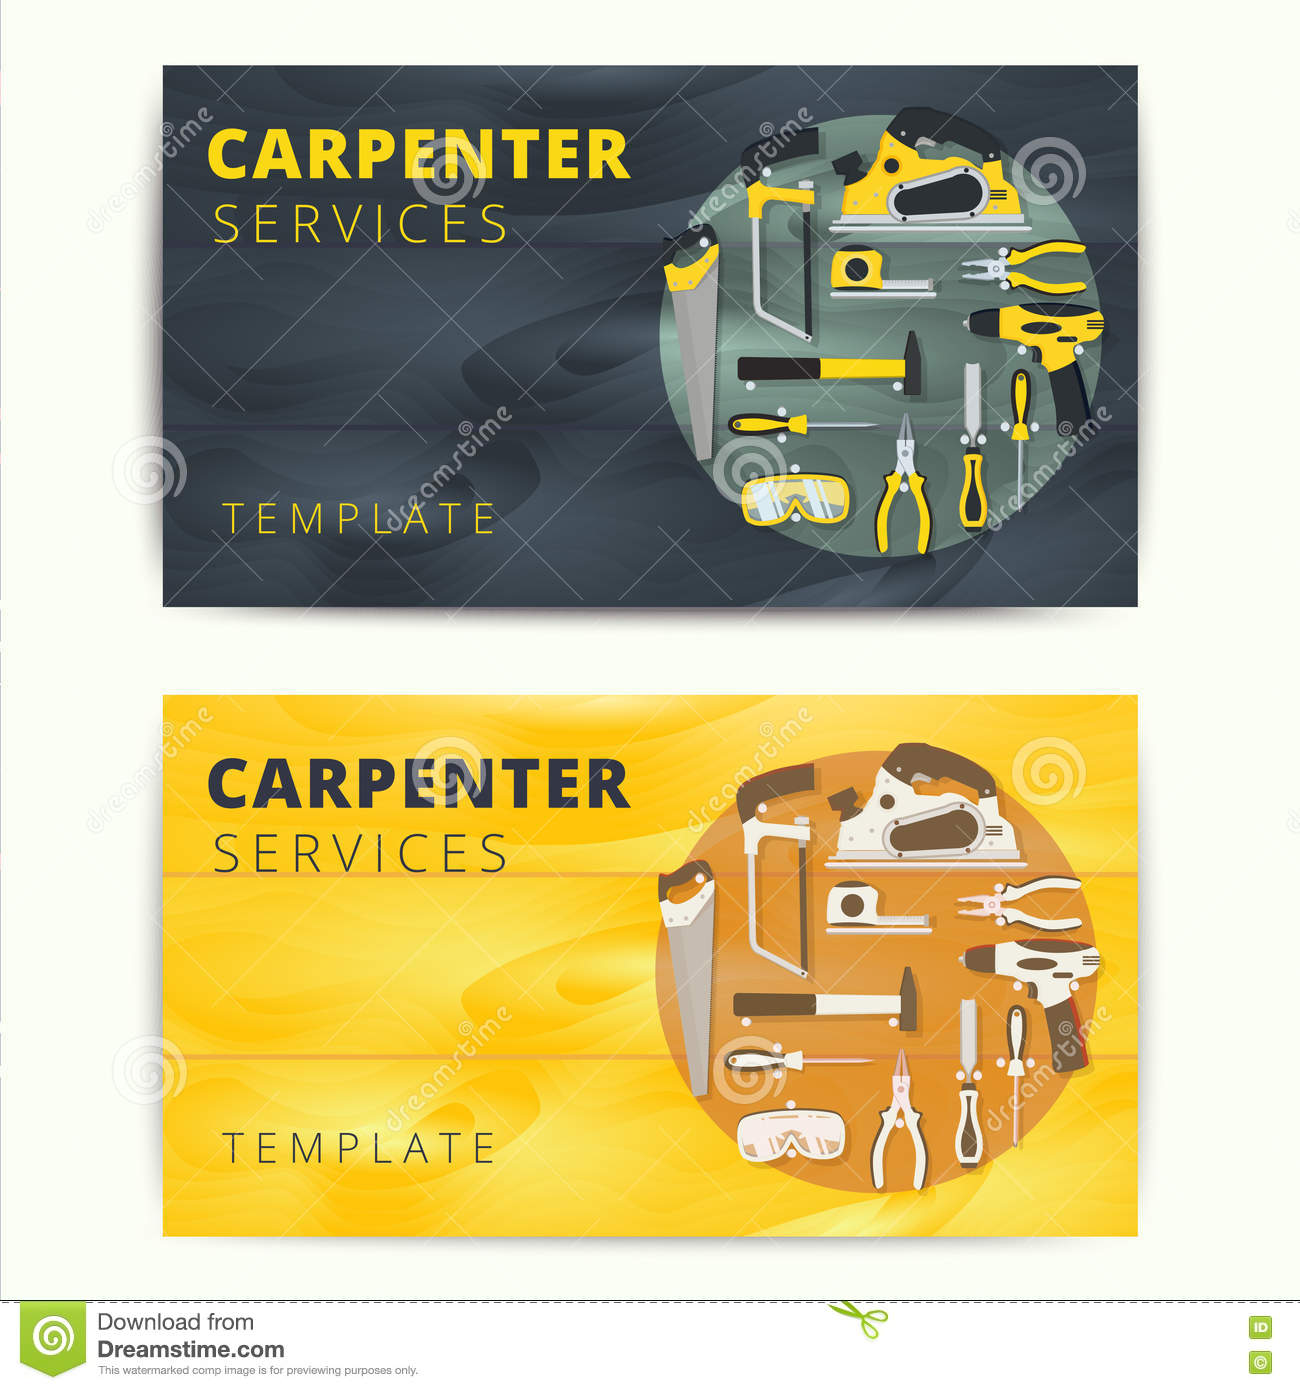 Carpenter or repairman service vector business card design wood download carpenter or repairman service vector business card design wood stock vector illustration of cheaphphosting Choice Image